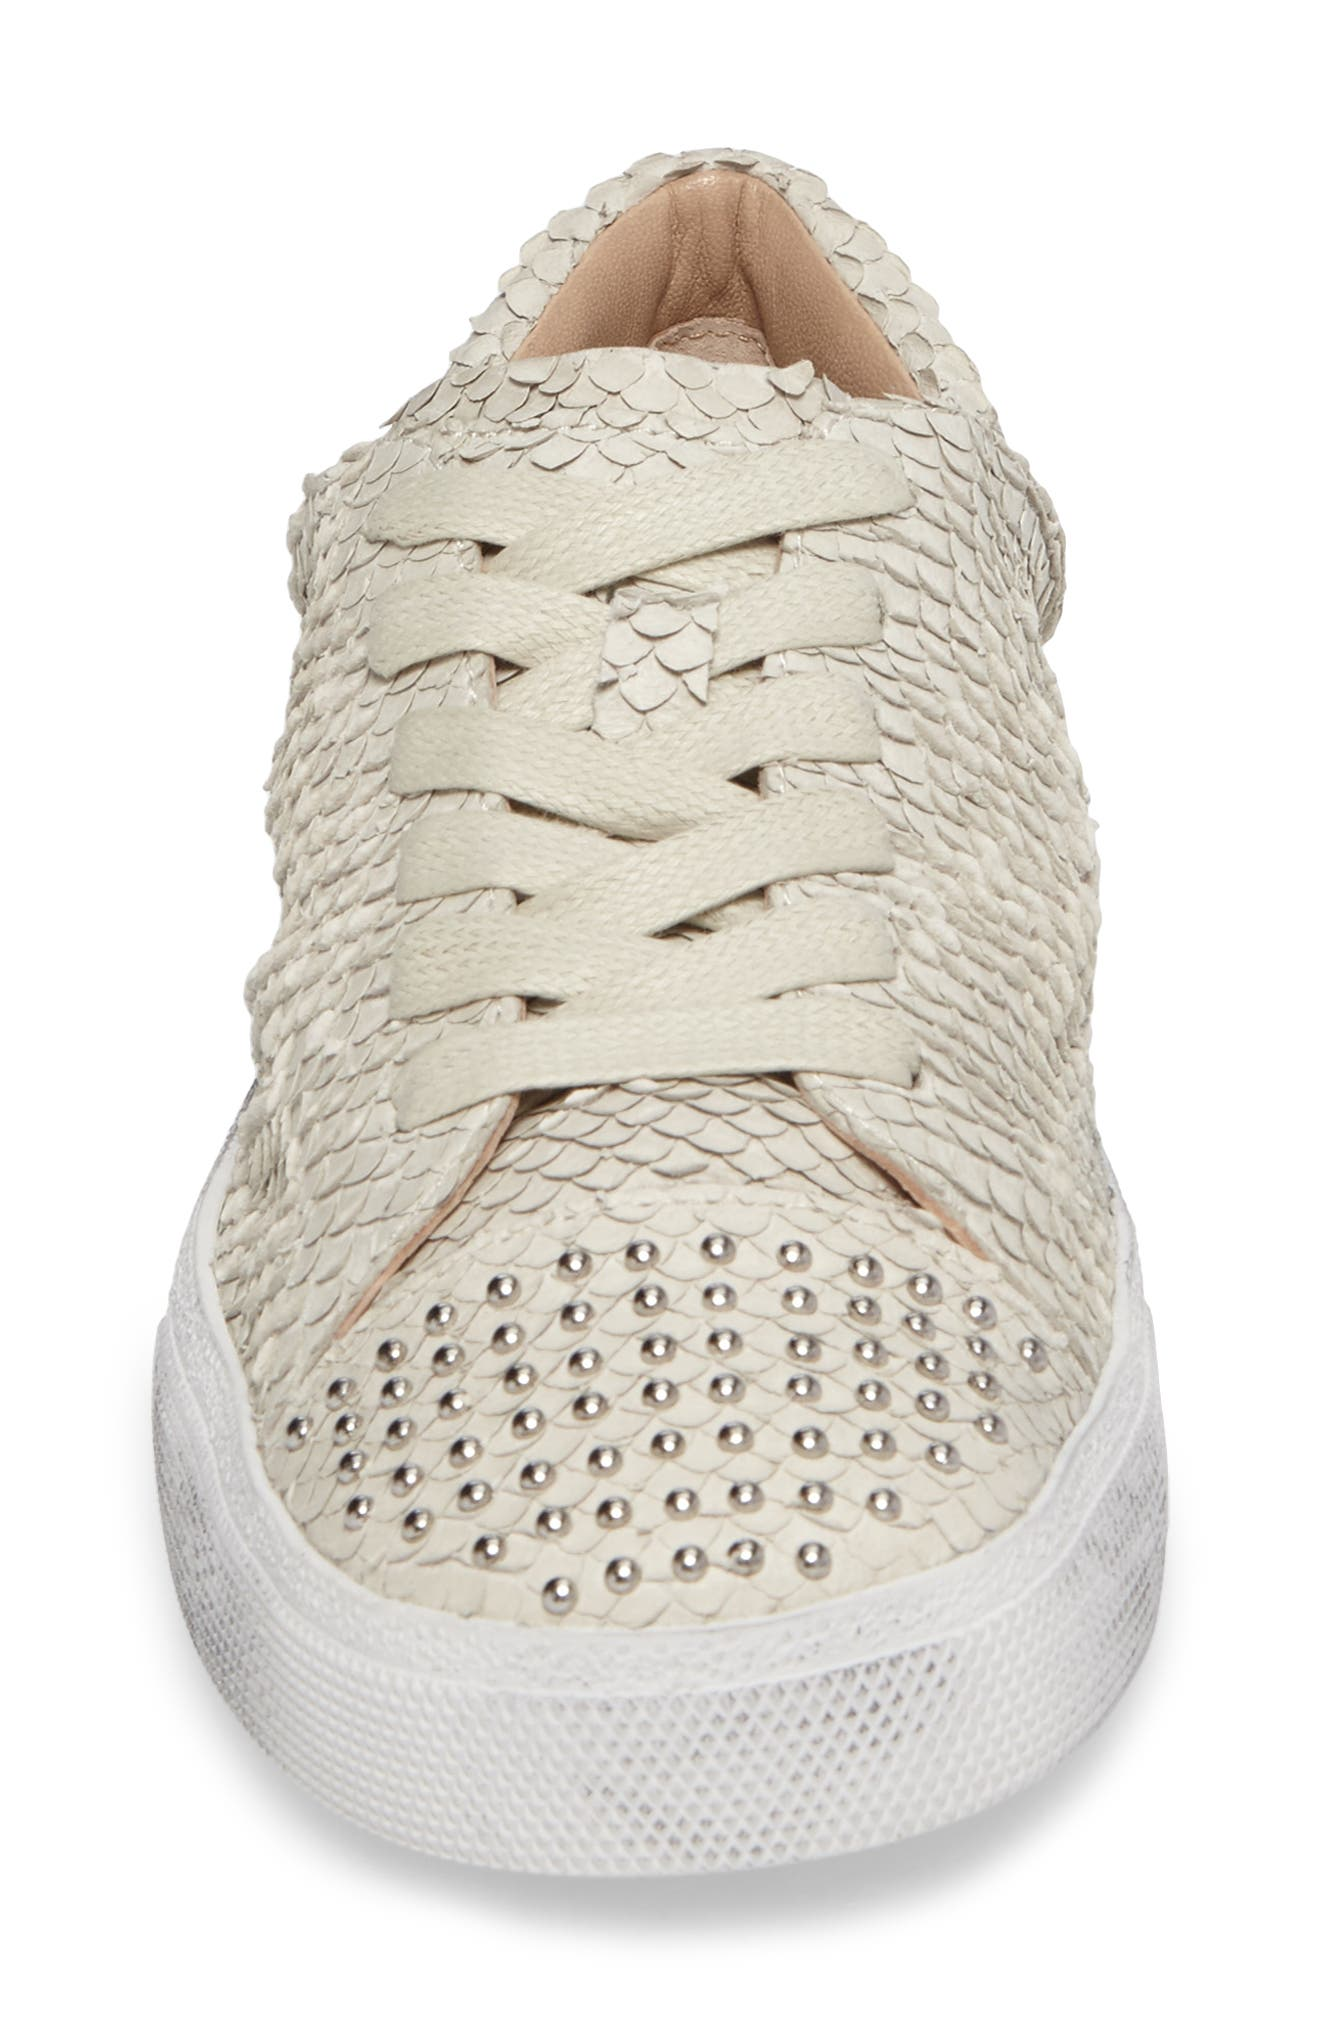 Catcall Studded Sneaker,                             Alternate thumbnail 4, color,                             Vodka/ Silver